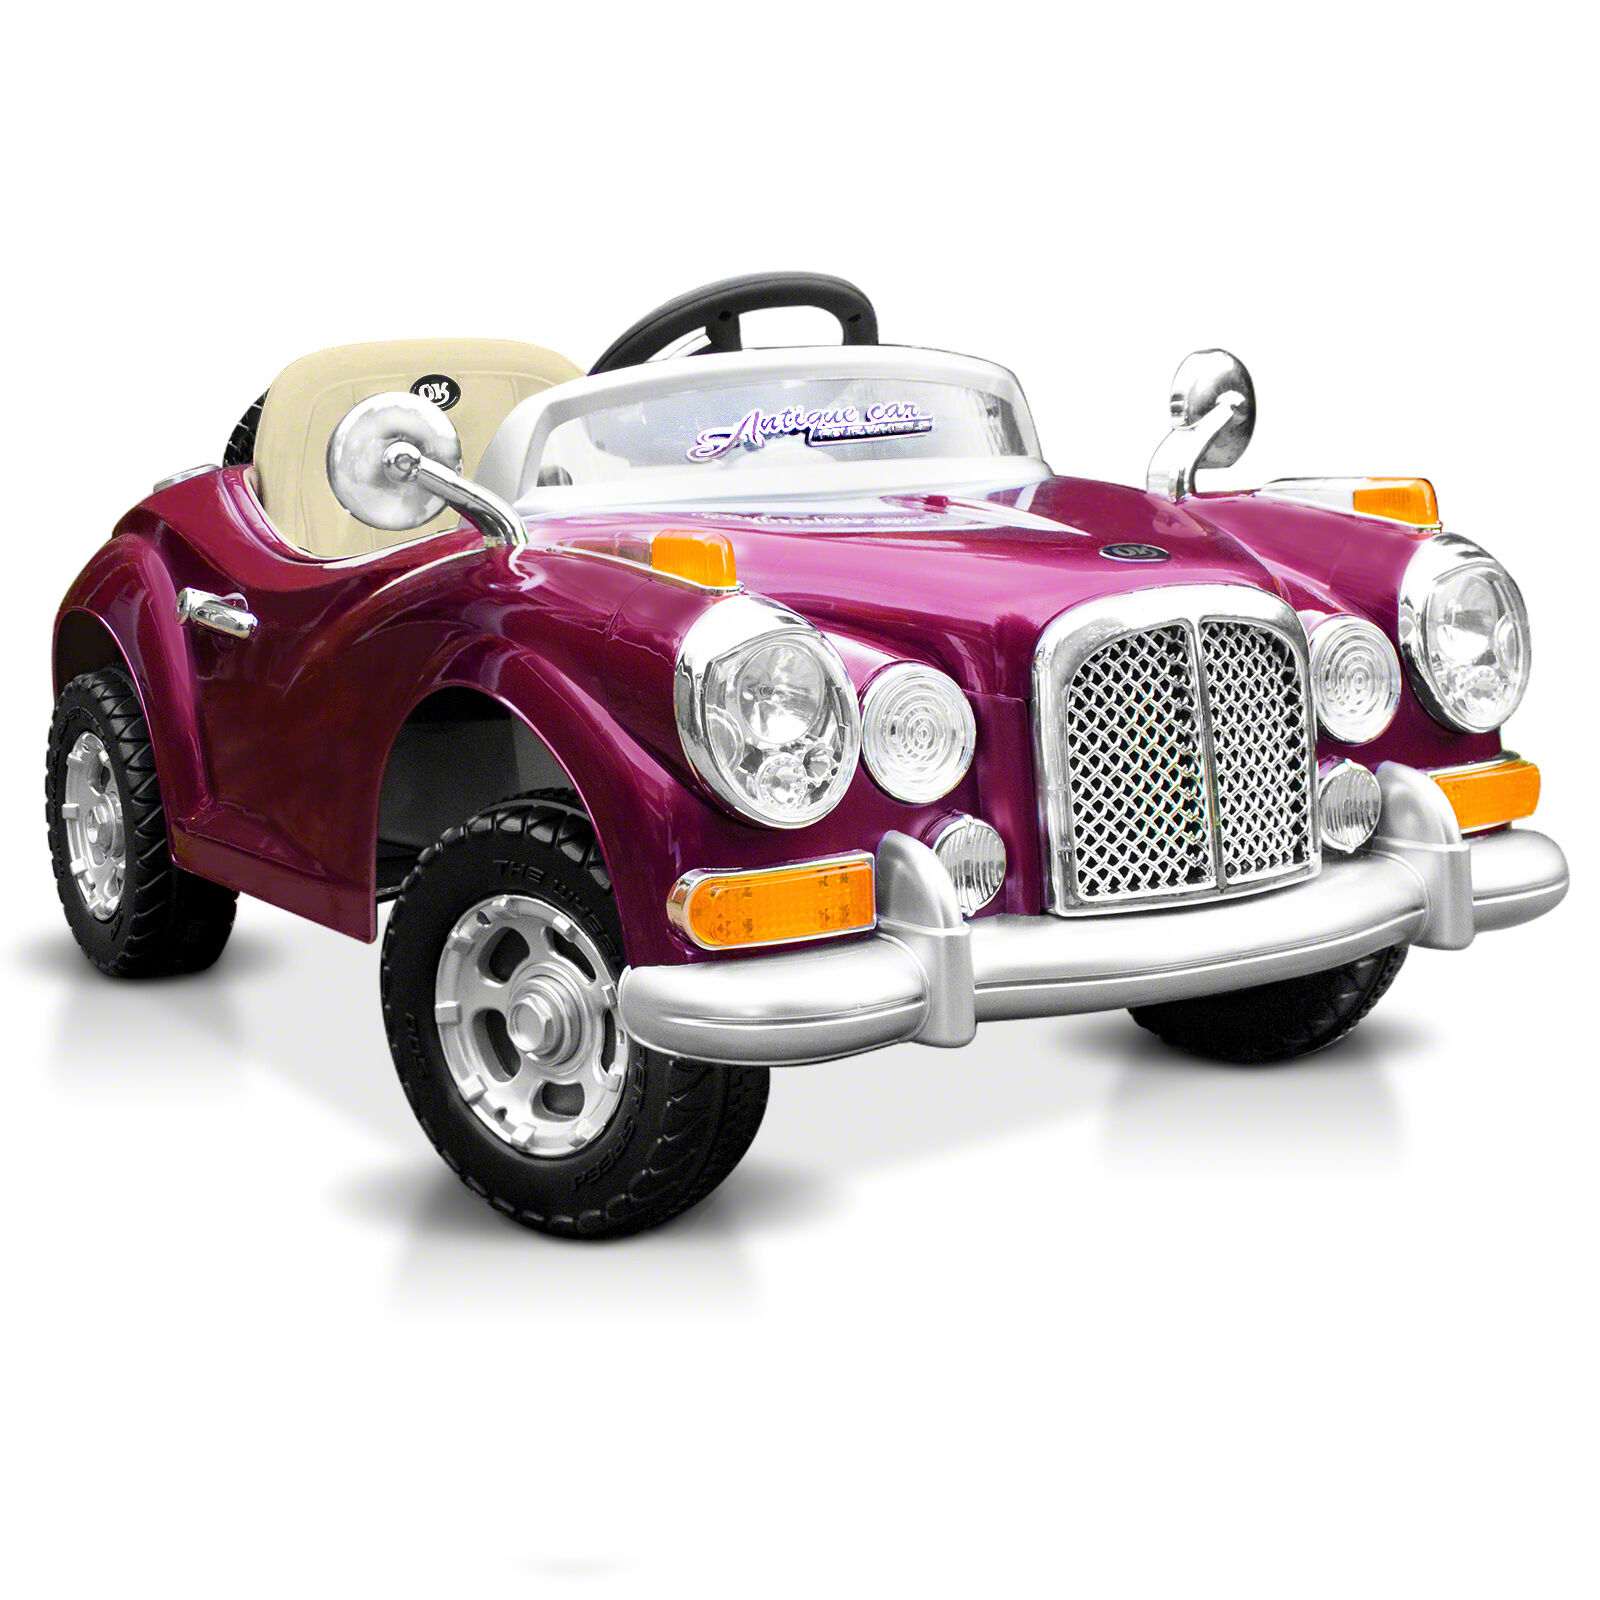 Beautiful Glossy Painted Kids Ride On Car Classic Vintage Rolls Royce Style